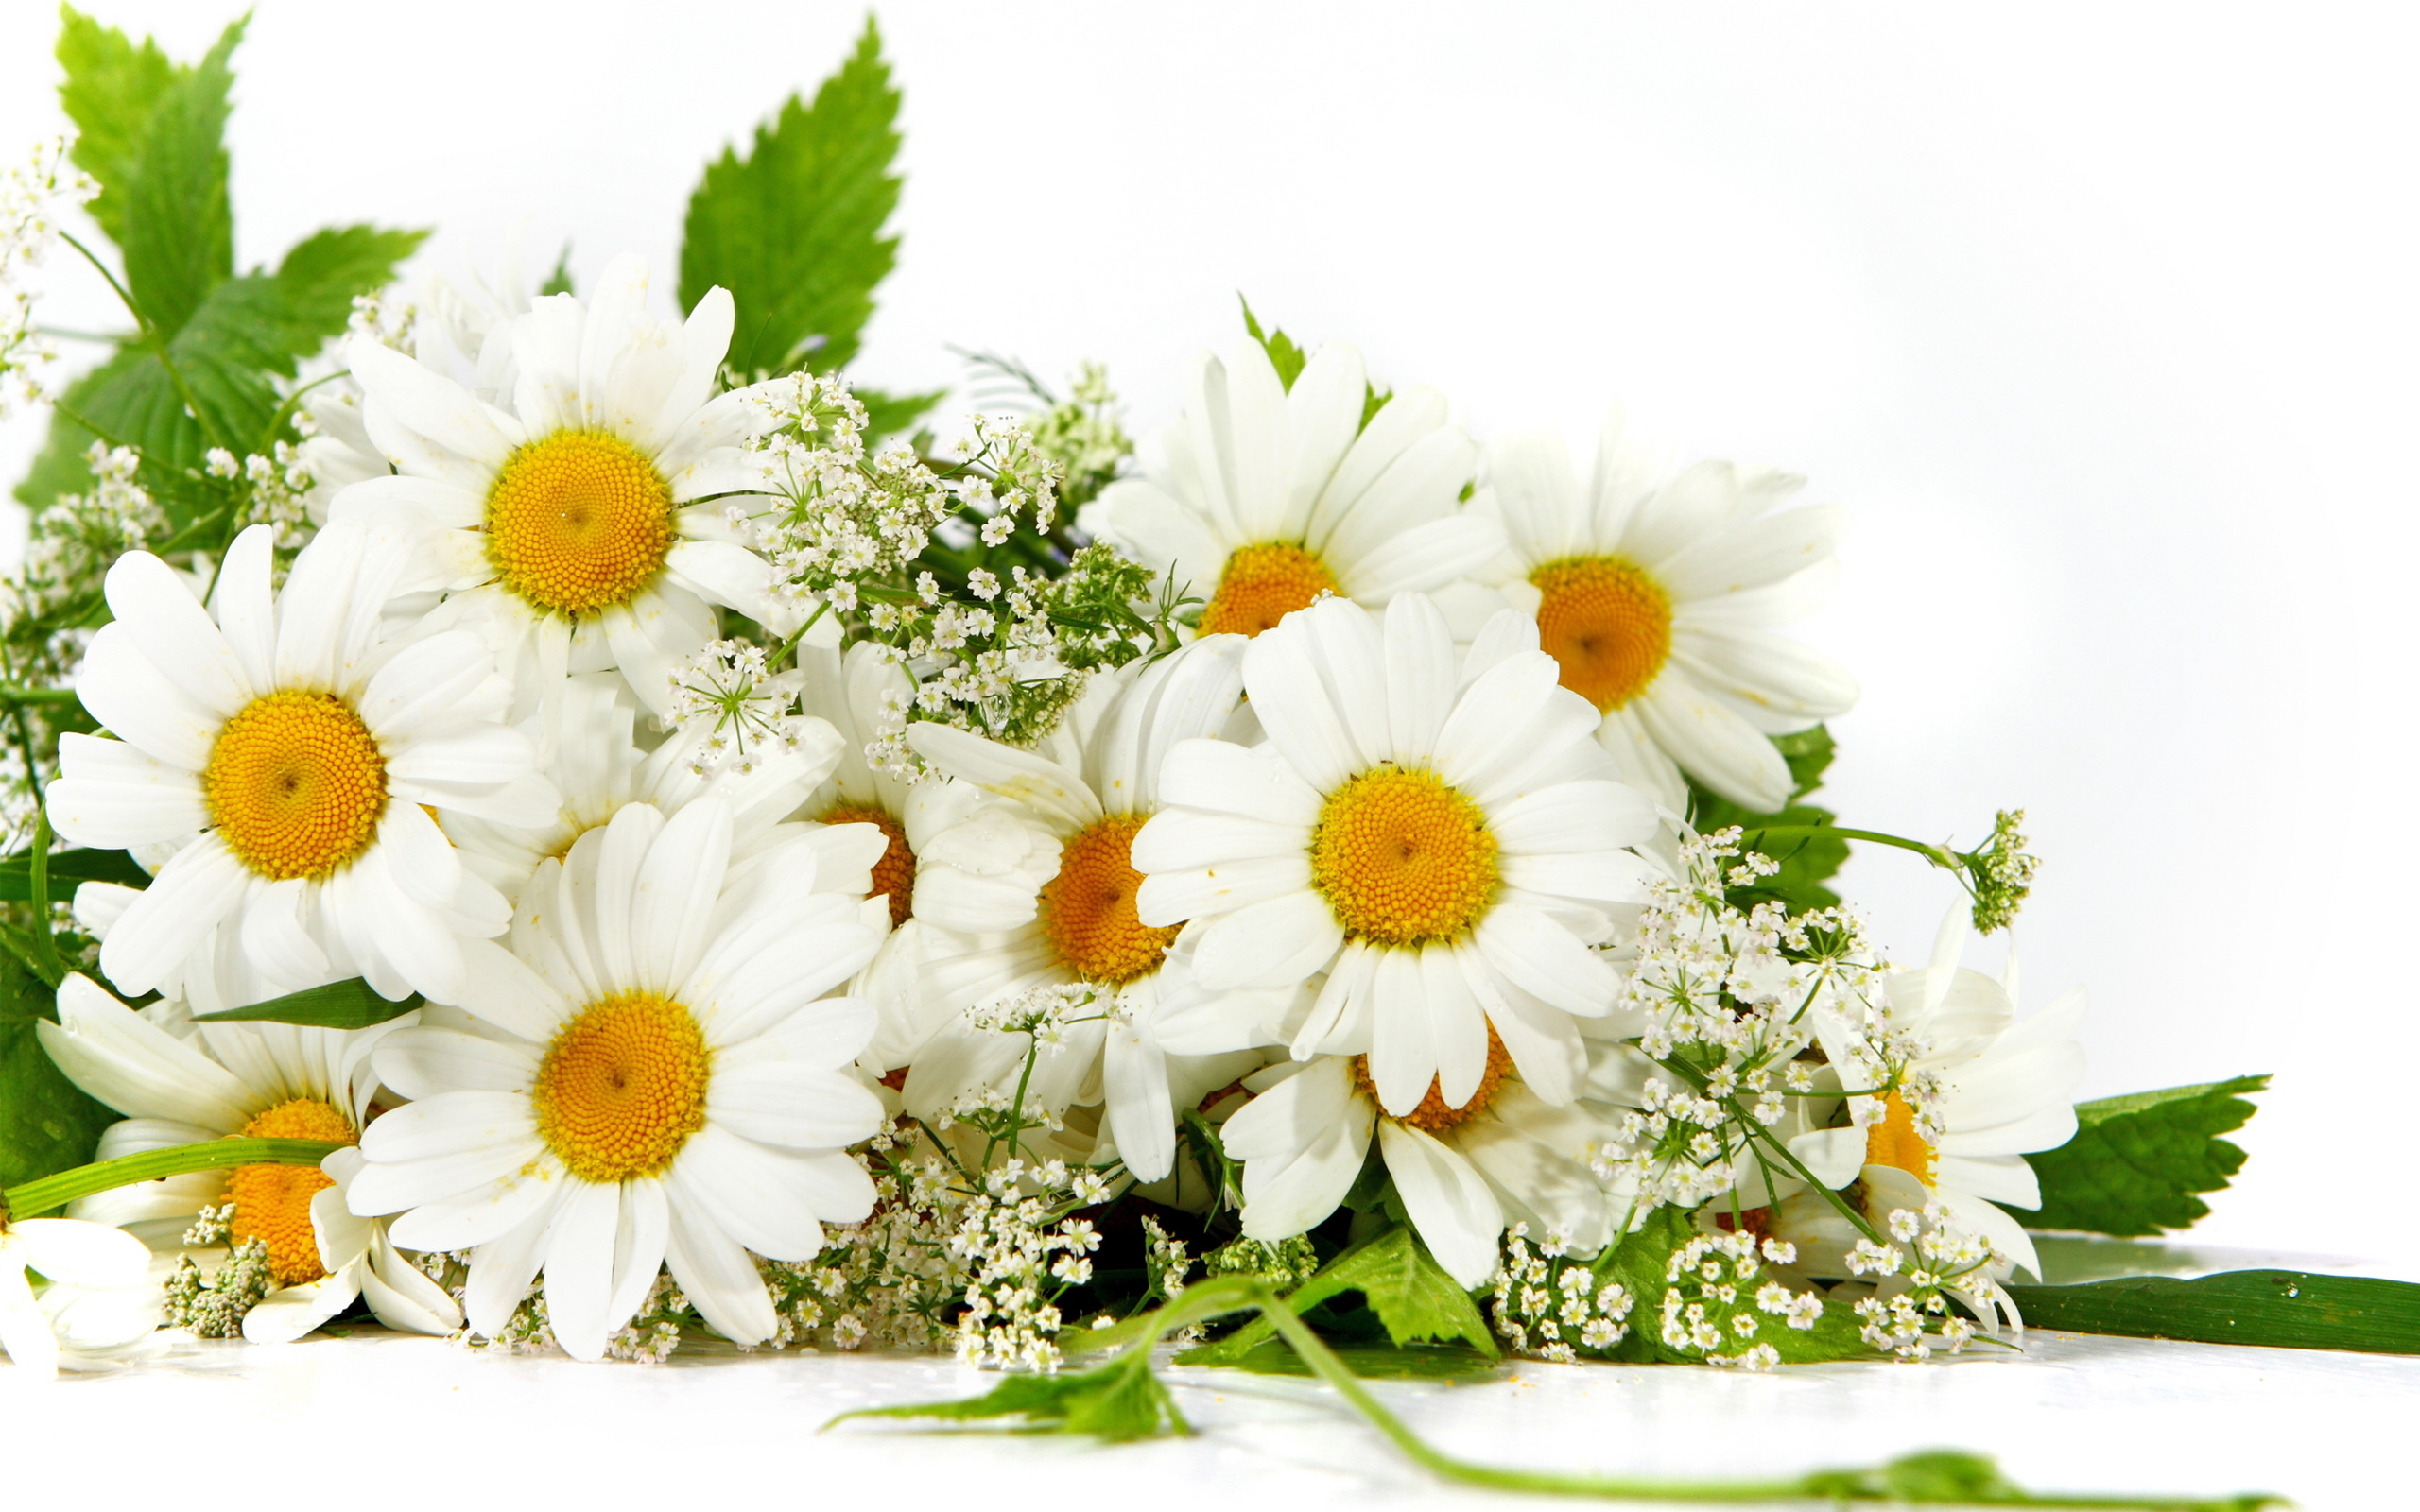 Bouquet of daisies wallpapers and images.